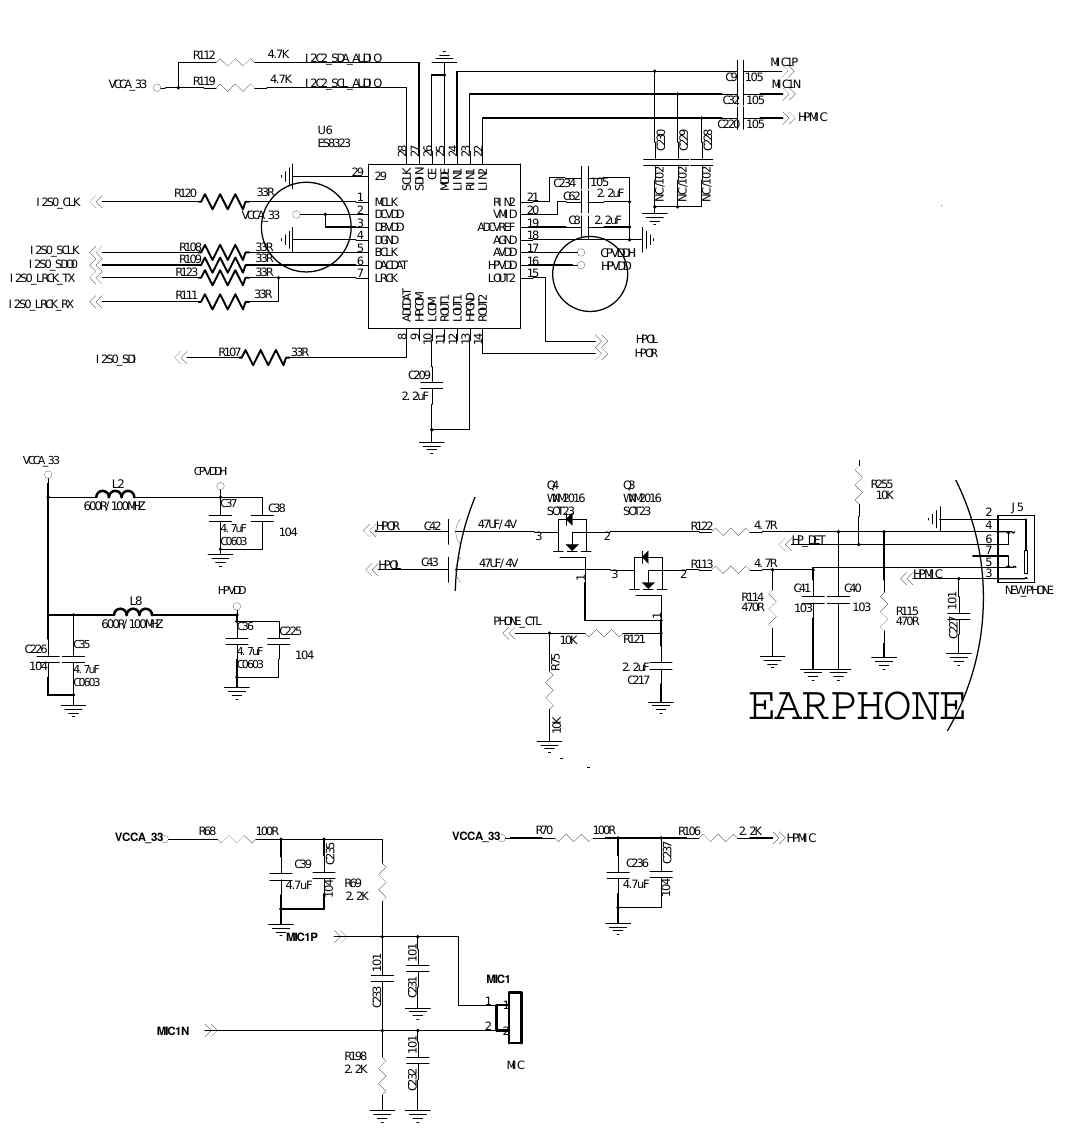 Peripheralschematics 1w Stereo Headphone Amplifier Based Tda2822 I2s For Audio Data I2c Control Of The Ic Ac97 Volumes And Routing Etc Optional Gpio Detection Eg Physical Insertion